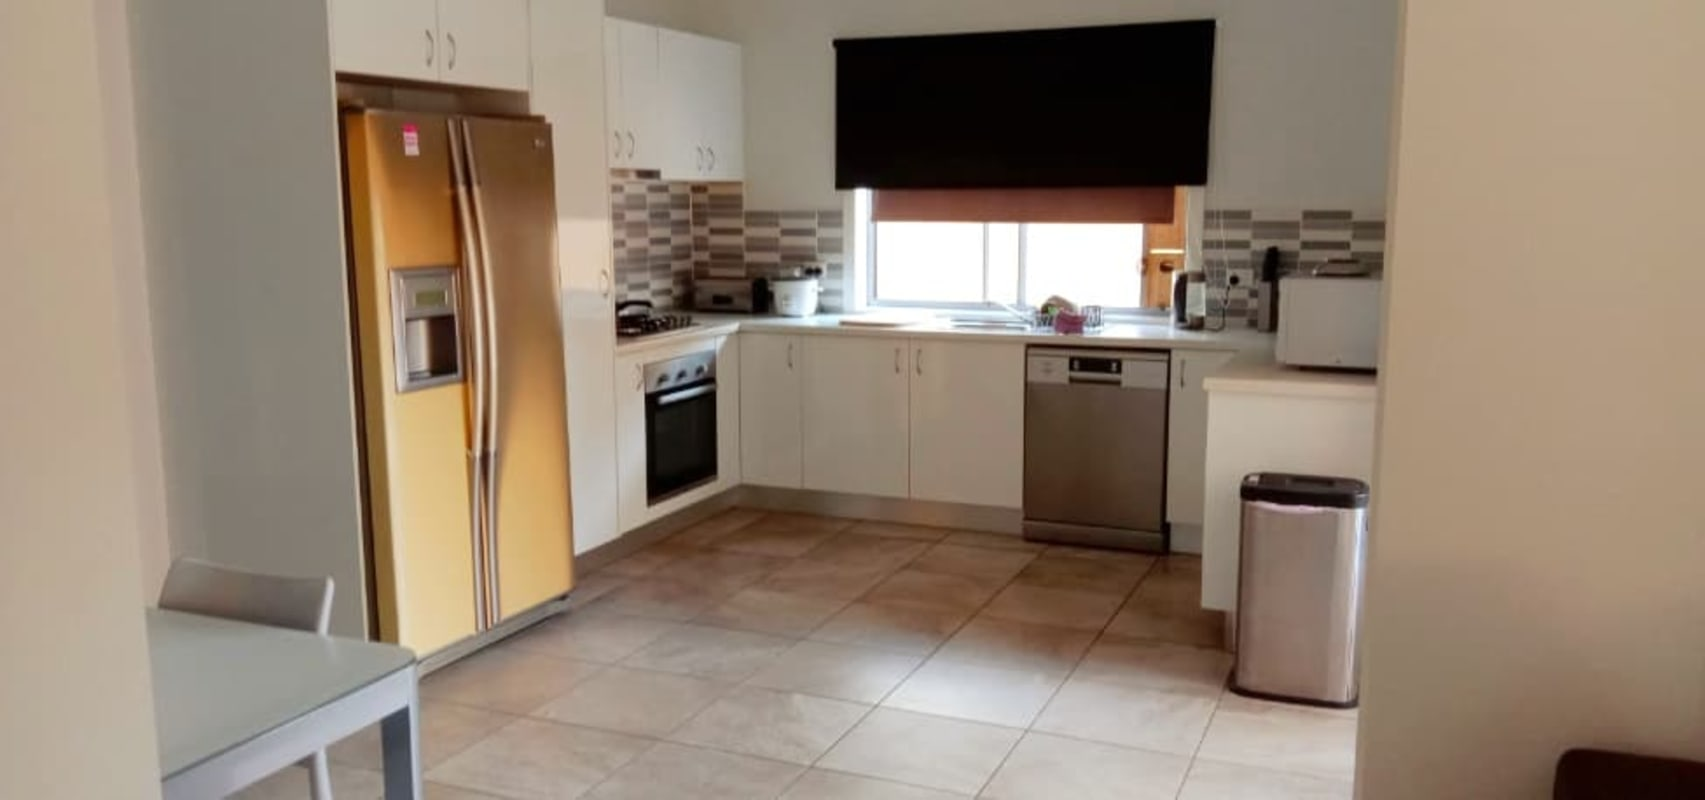 $220, Share-house, 3 bathrooms, Sapphire Drive, Rutherford NSW 2320